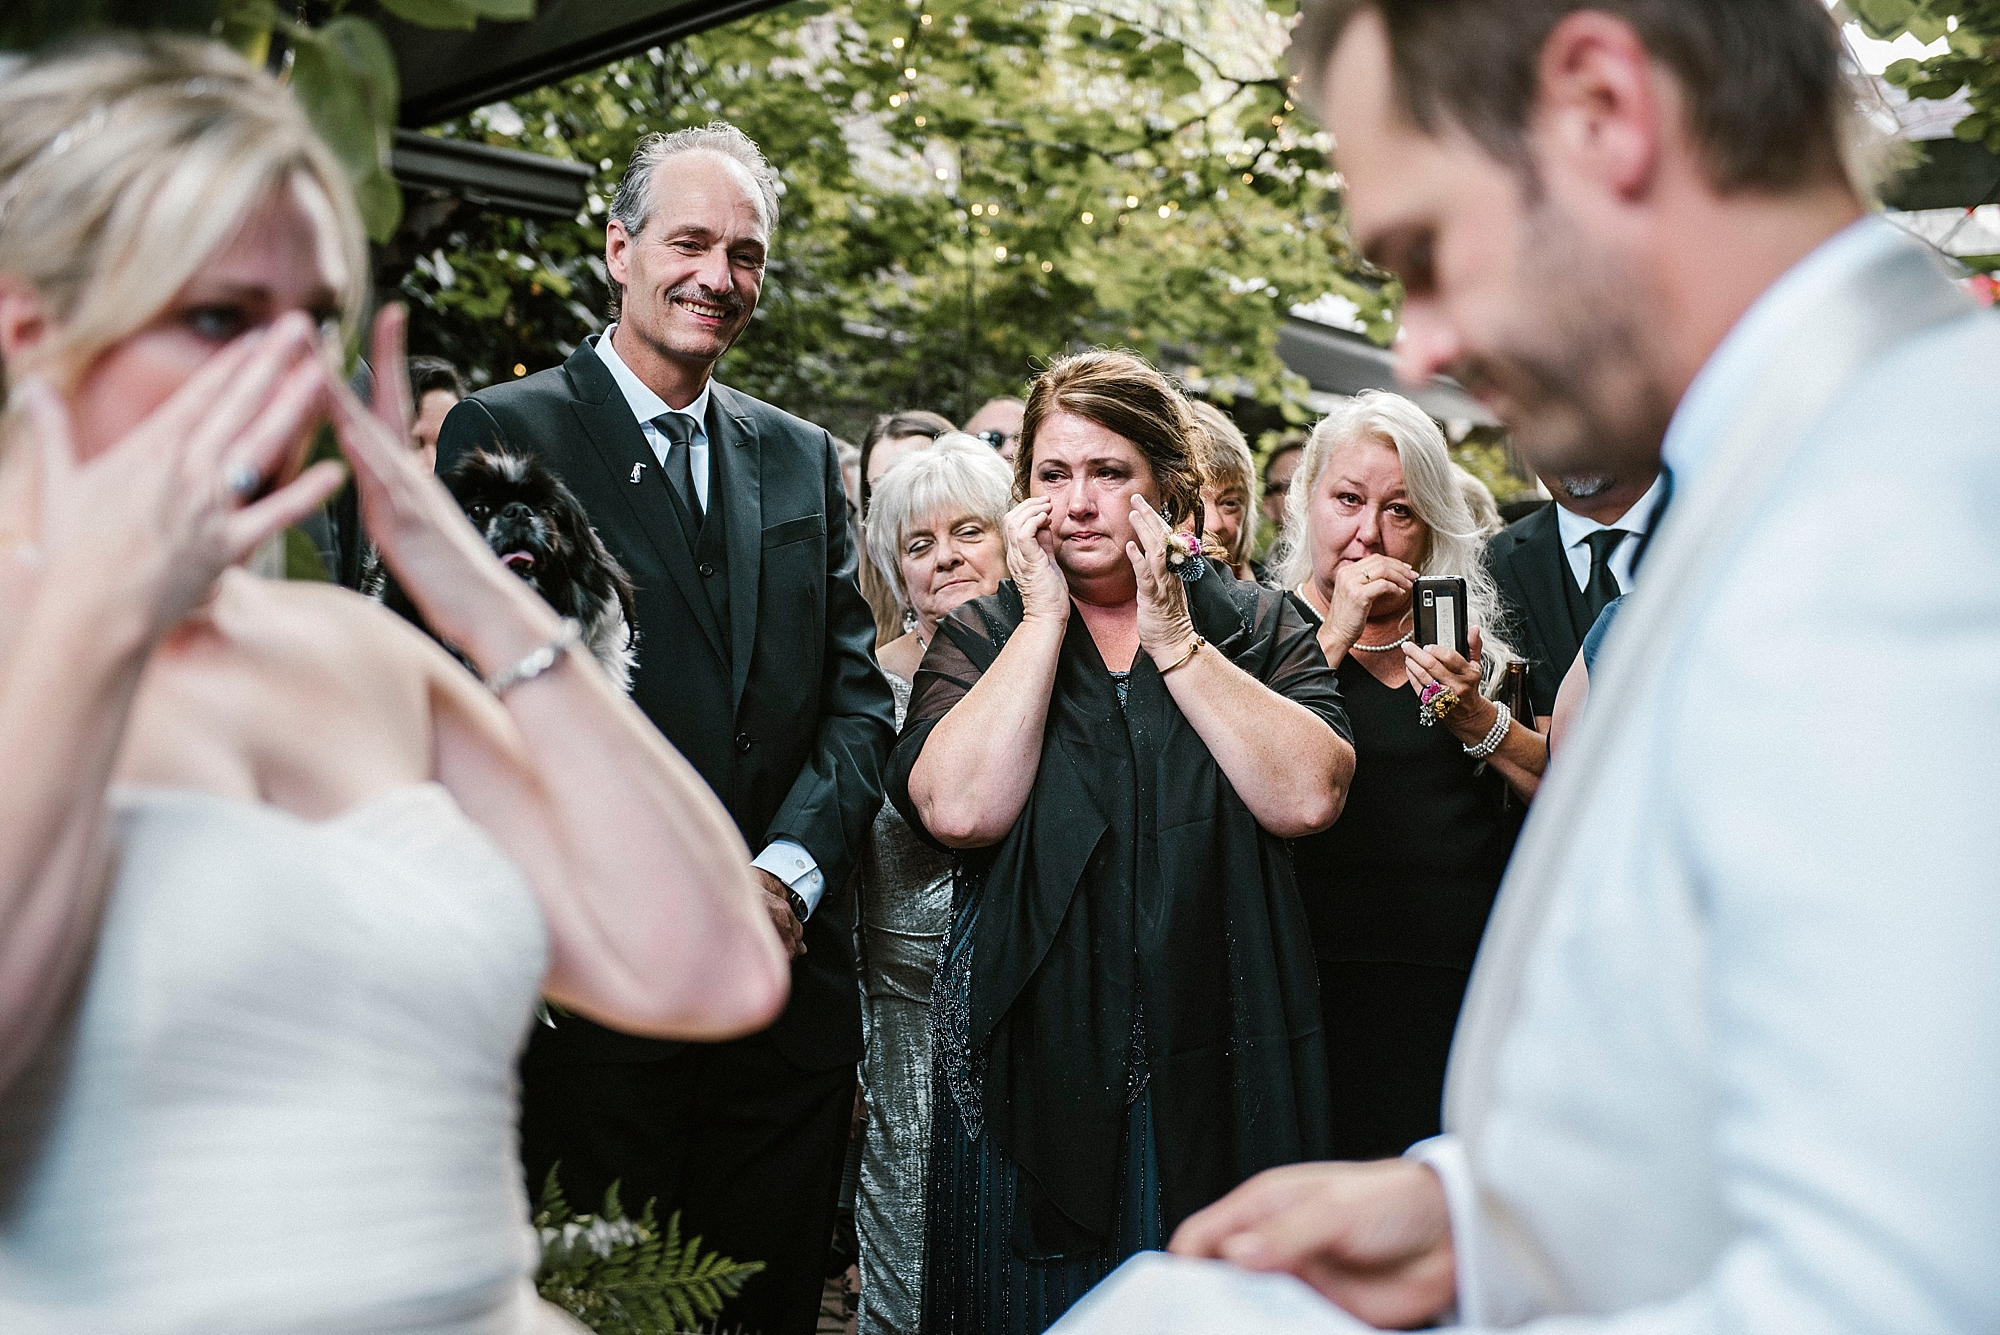 Weddings are emotional - Pittsburgh wedding photographer